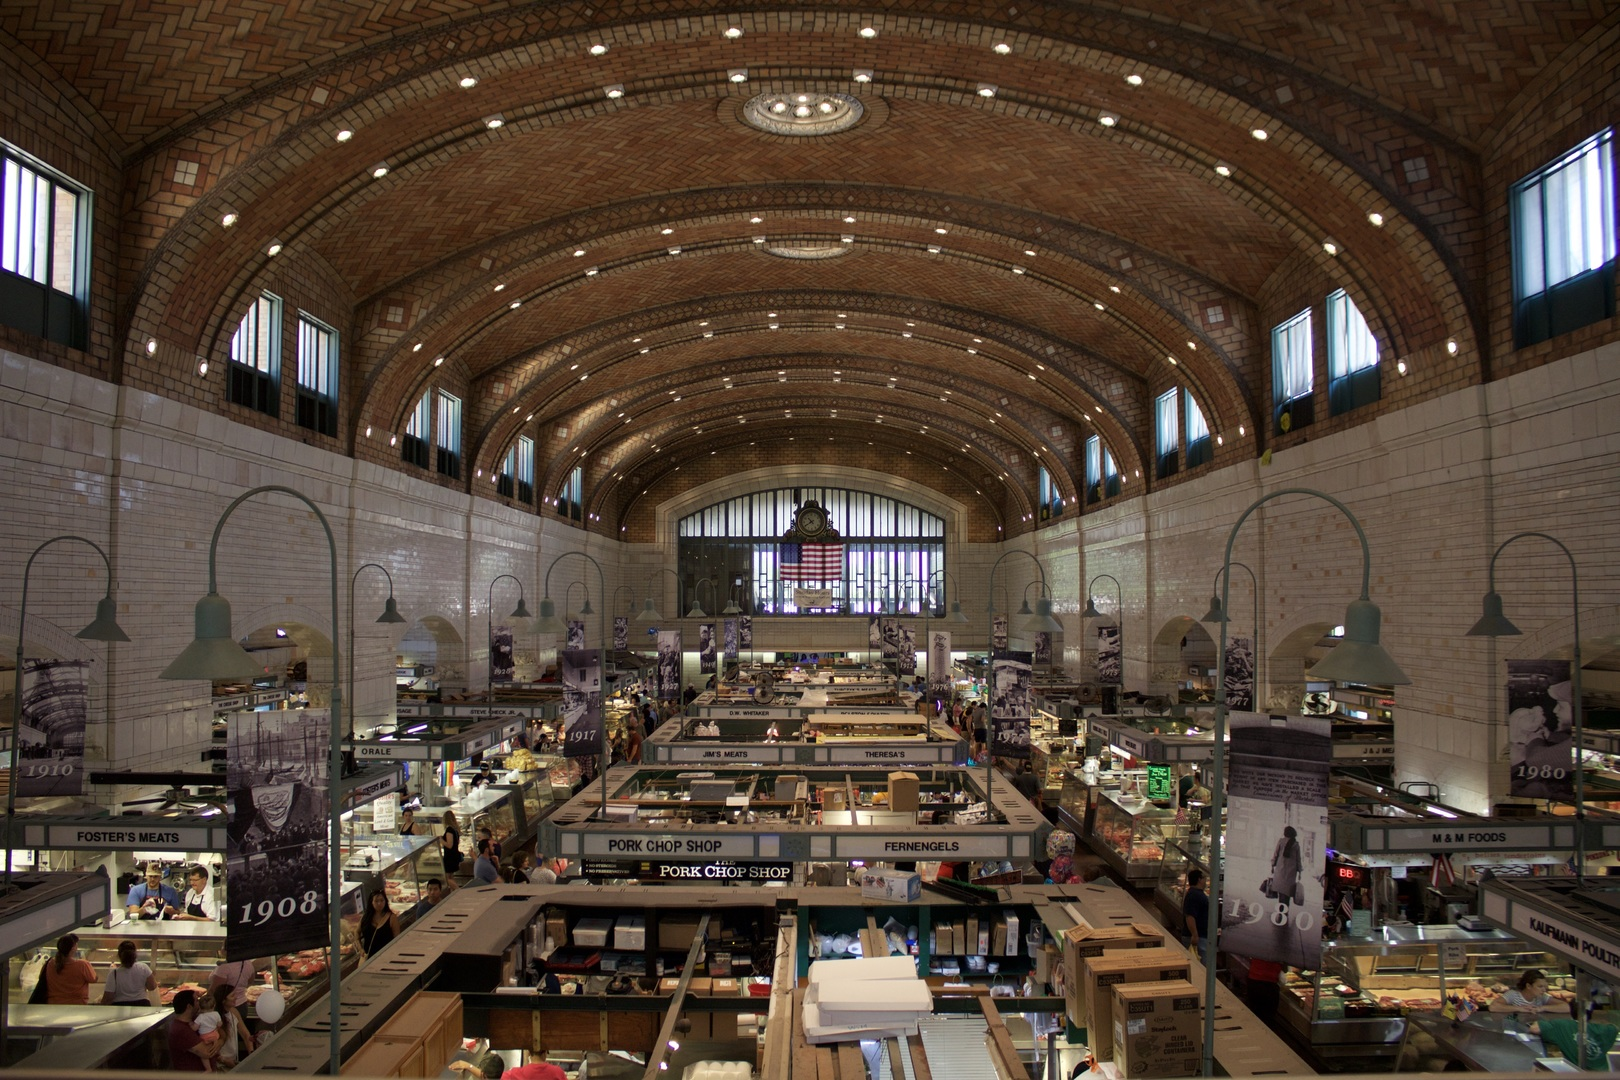 Sightseeing Place to Visit In Ohio-West Side Market